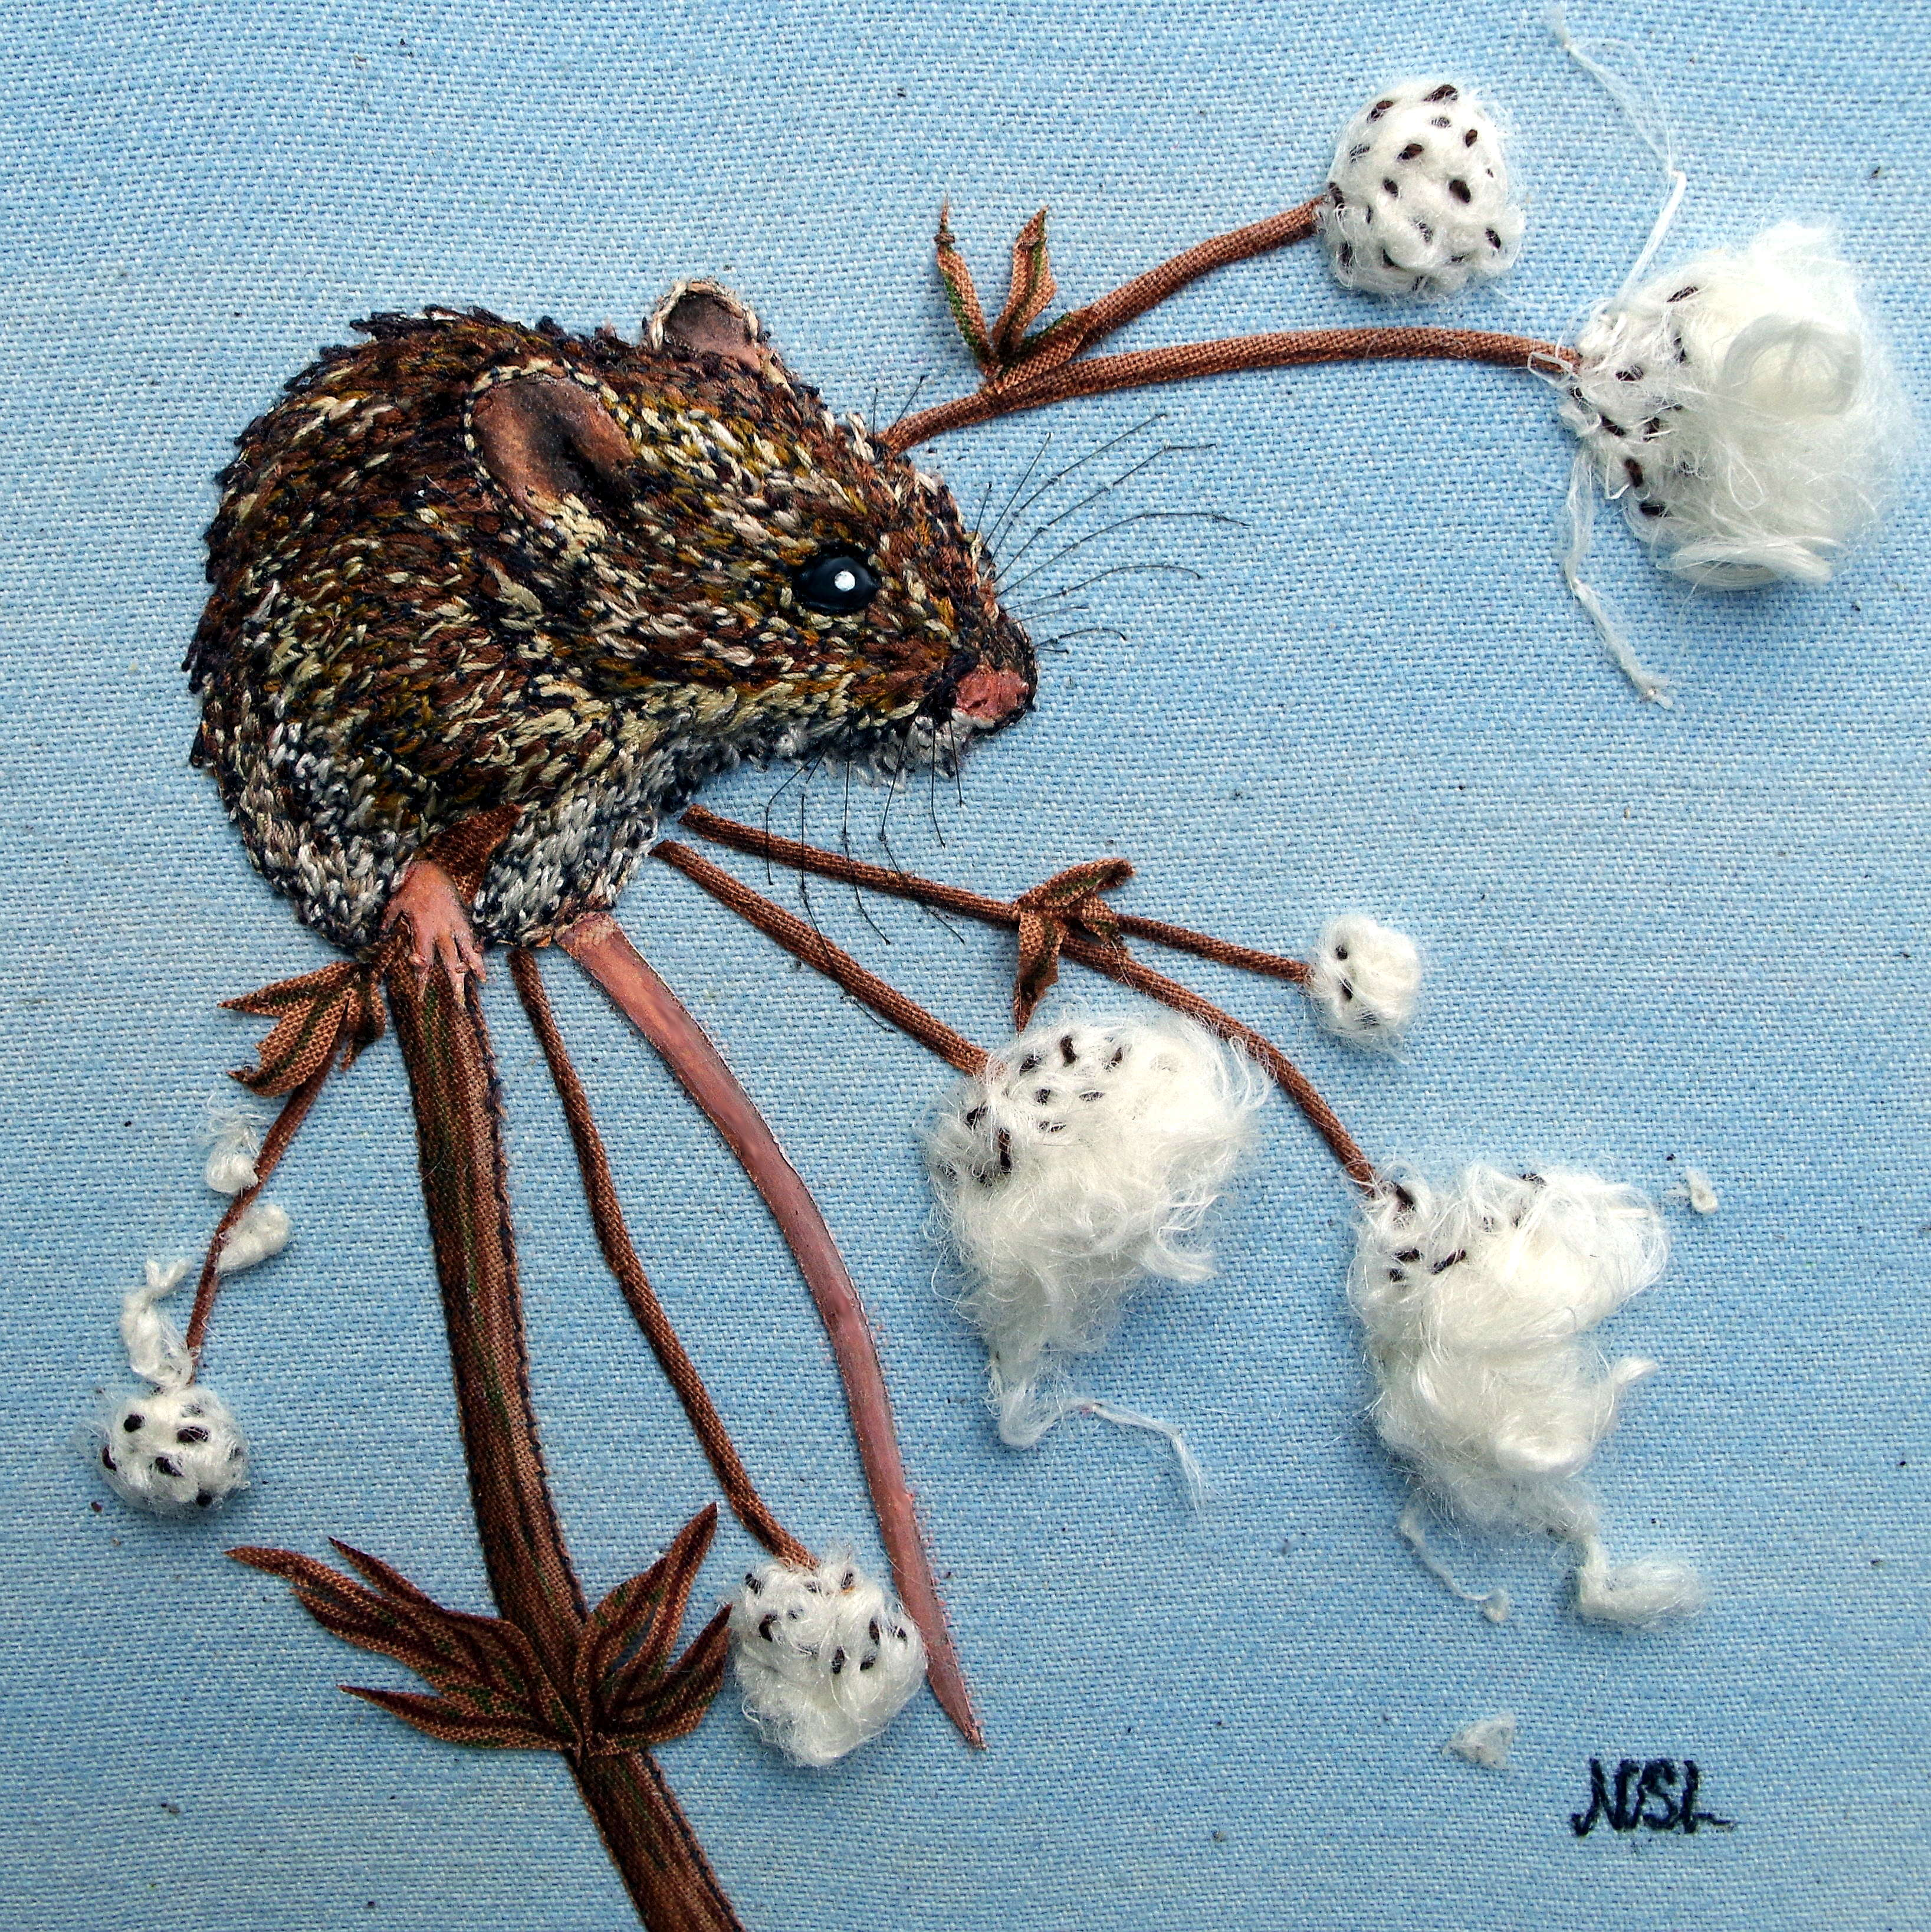 The Seed Collector SOLD